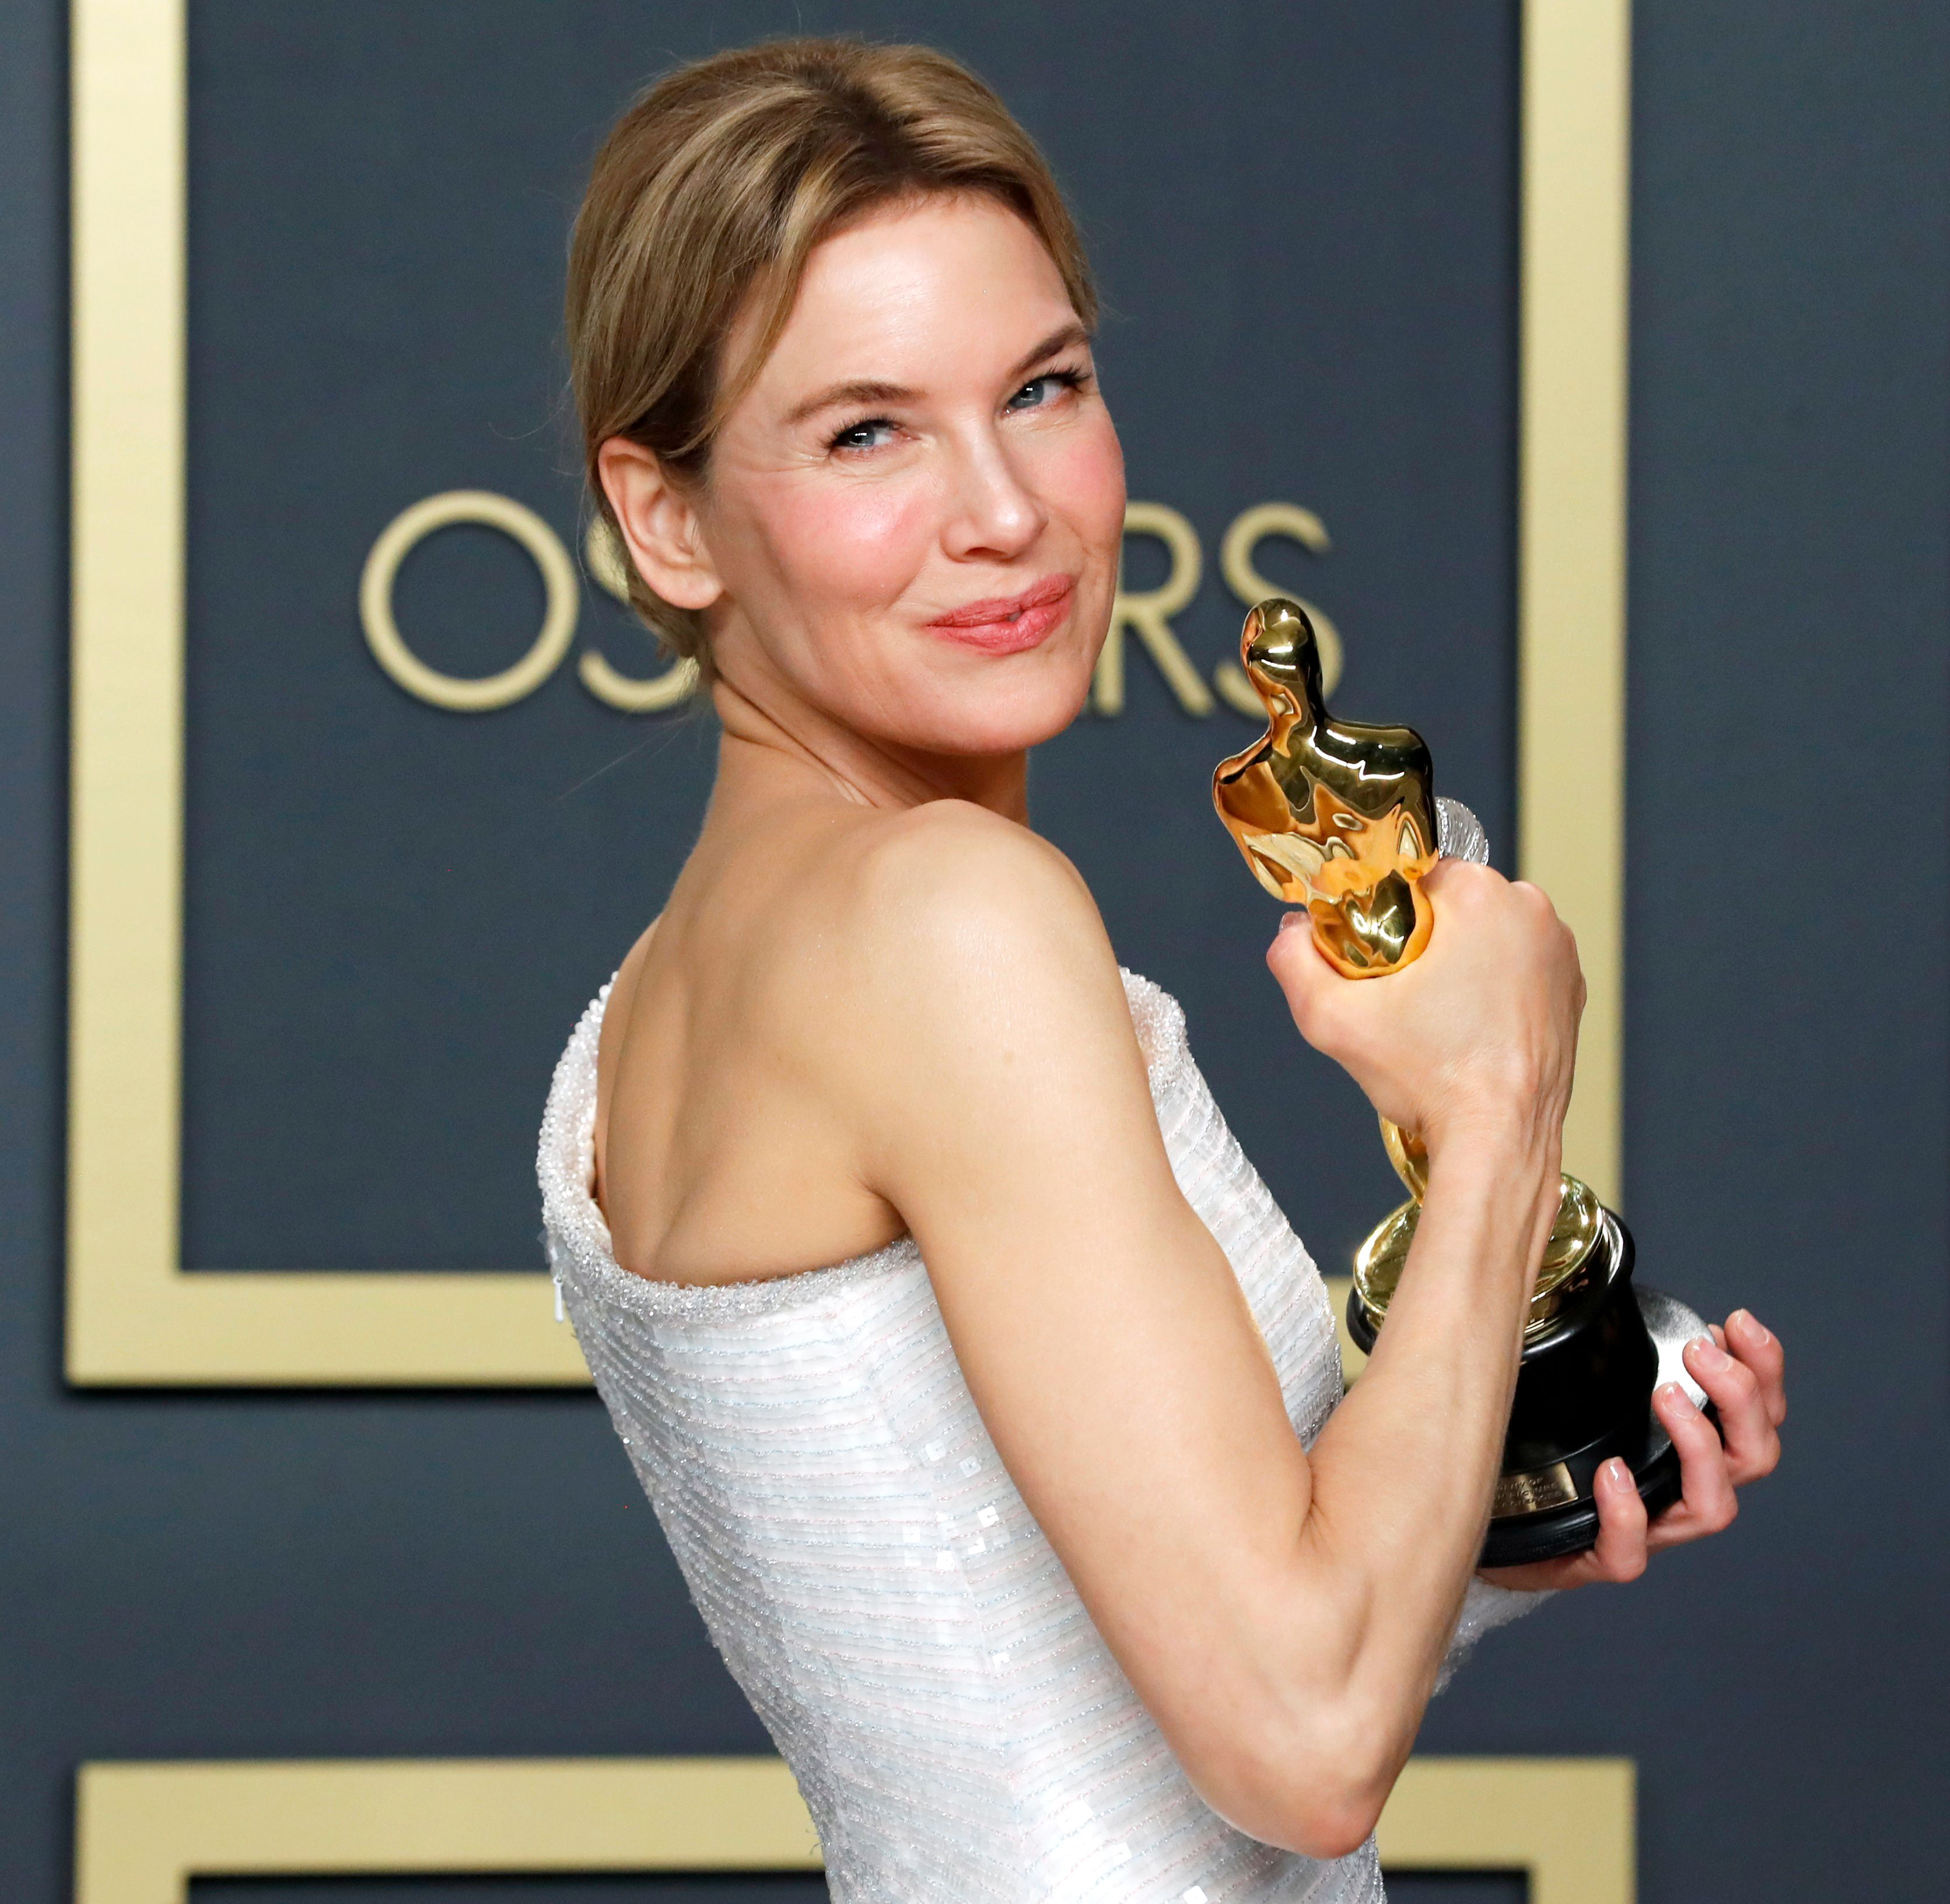 """Renee Zellweger poses with her Oscar for Best Actress in """"Judy"""" in the photo room during the 92nd Academy Awards in Hollywood, Los Angeles, California, U.S., February 9, 2020. REUTERS/Lucas Jackson"""